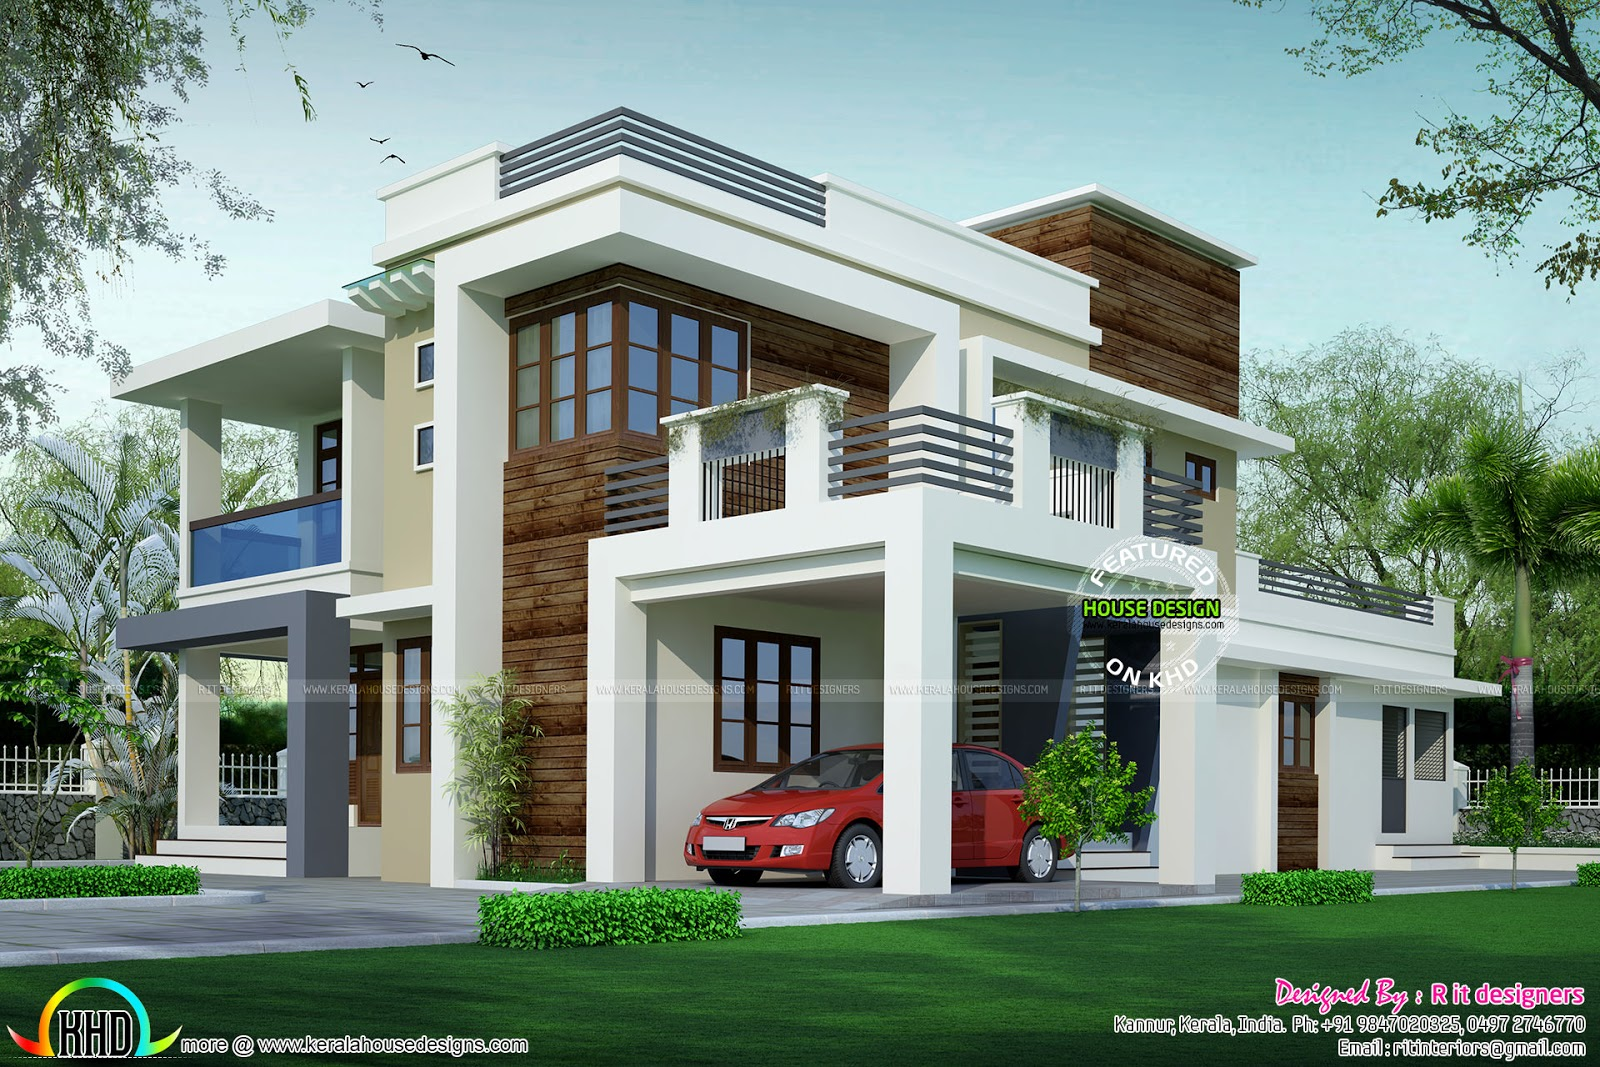 house design contemporary model kerala home design and floor plans